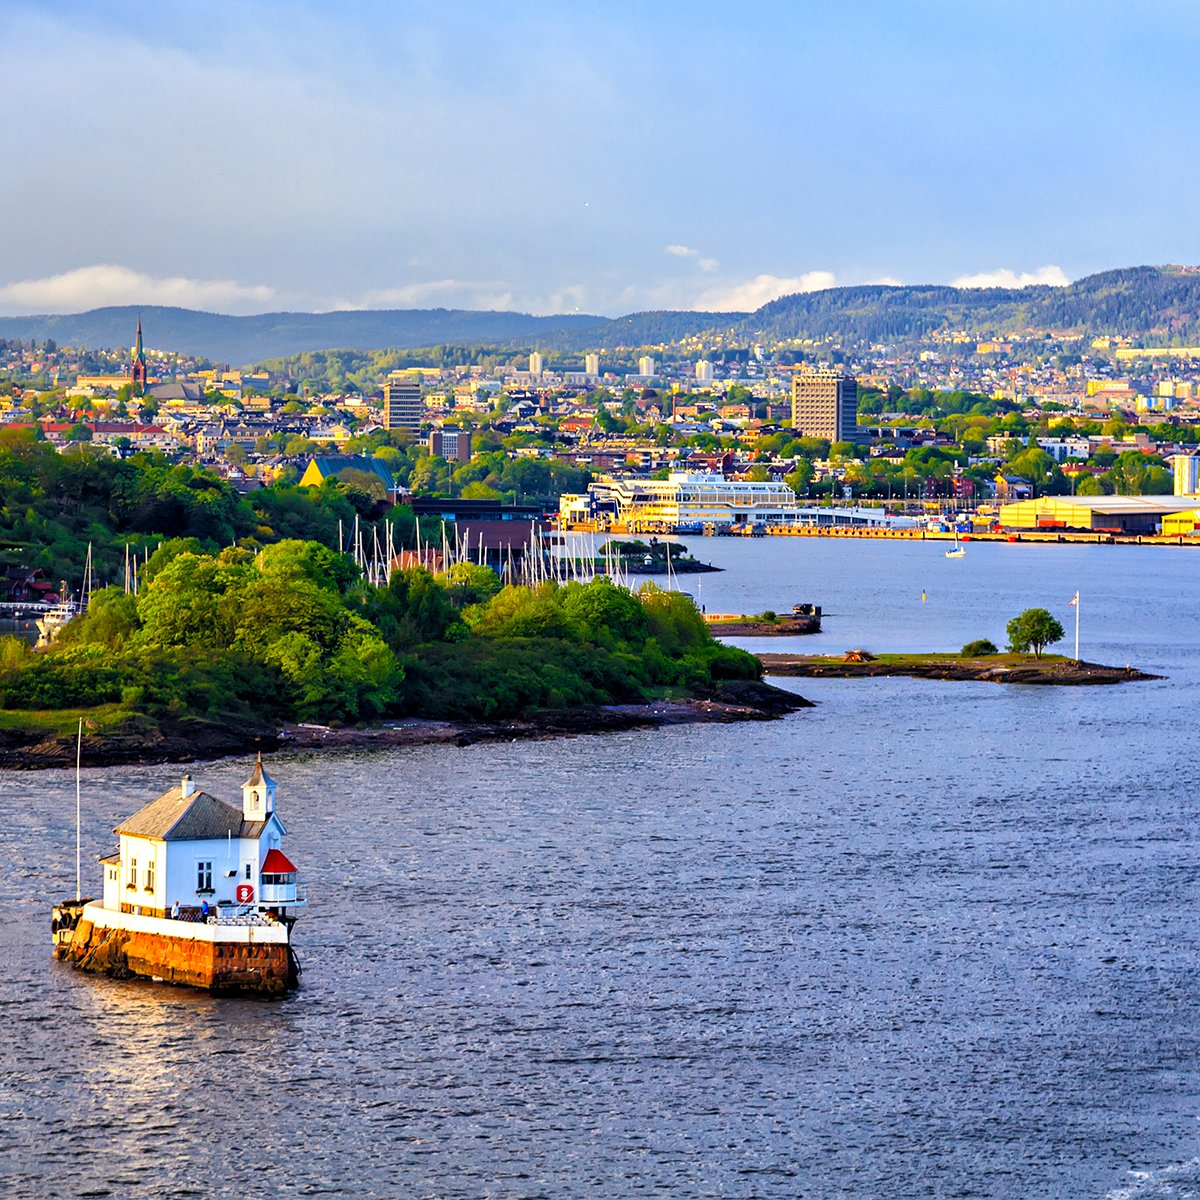 Fly from £92 with @bmiregional to Oslo. Hike in forests, swim in fjords & shop. Book now: